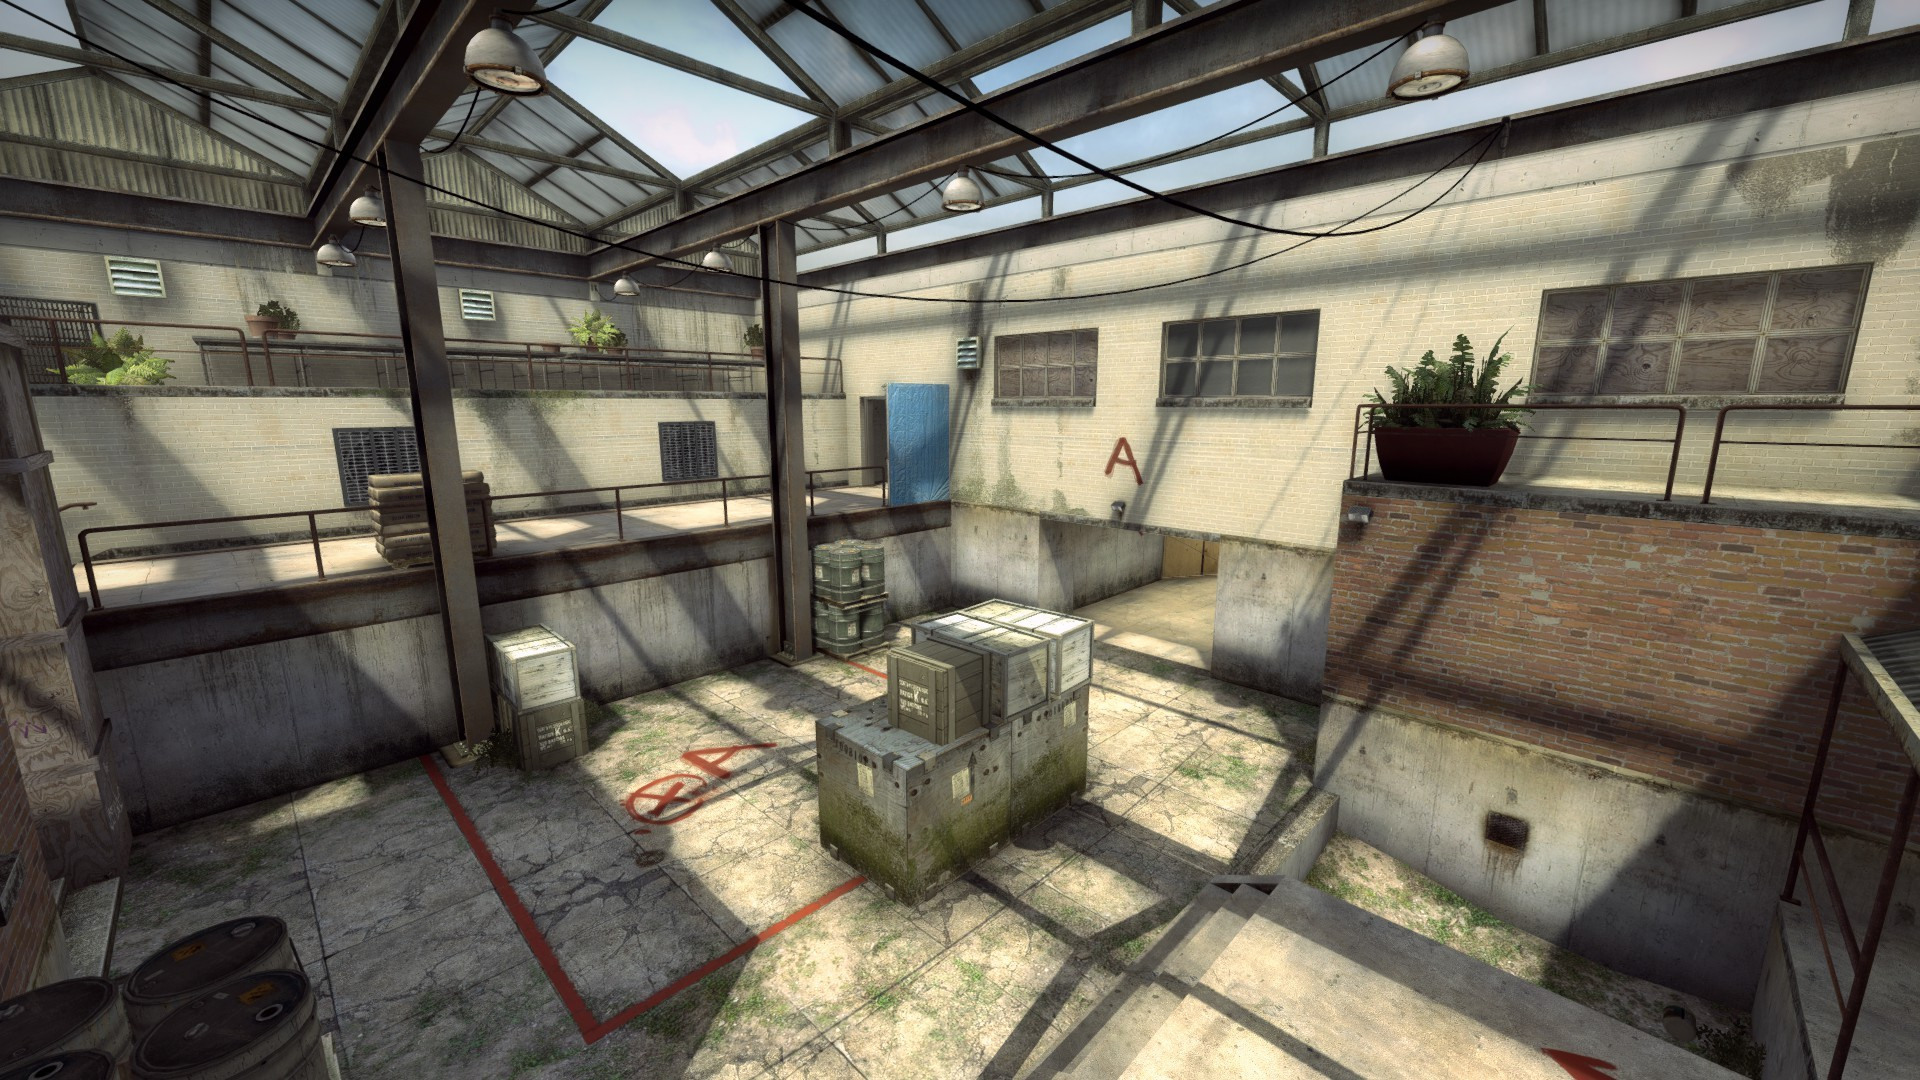 https://gaming4.cash/wp-content/uploads/2019/03/de_season-CSGO-Map.jpg